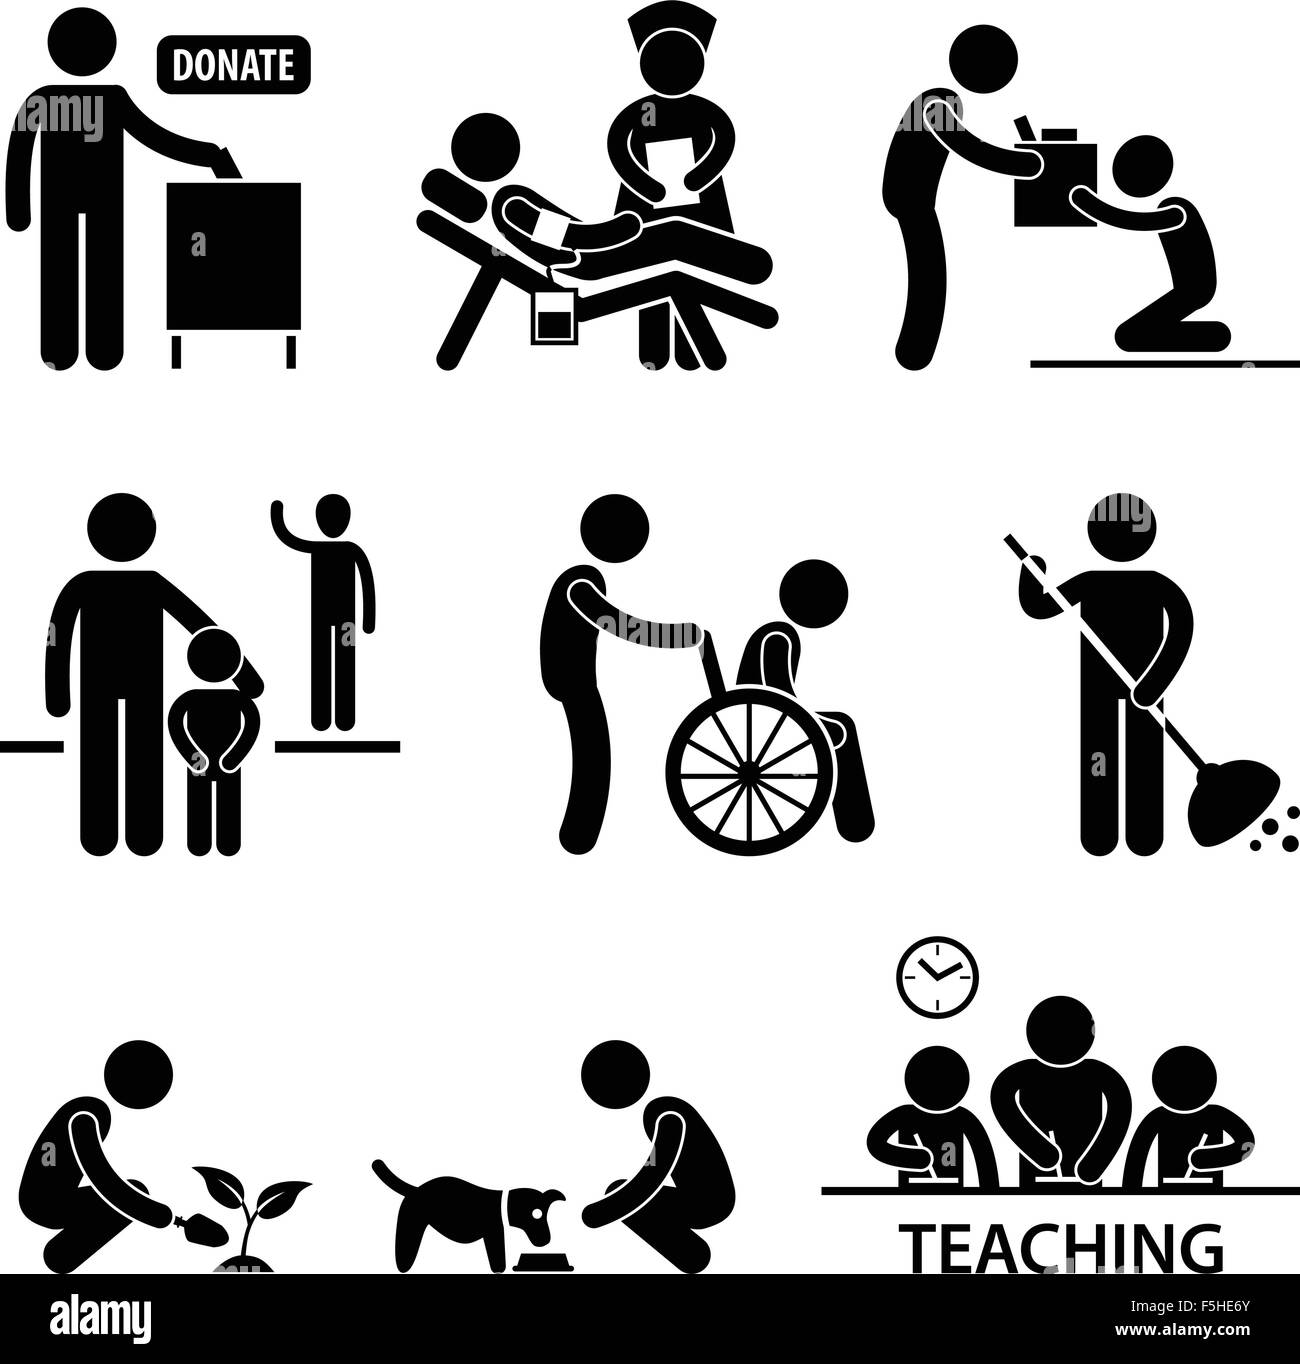 Charity Donation Volunteer Helping Stick Figure Pictogram Icon - Stock Image